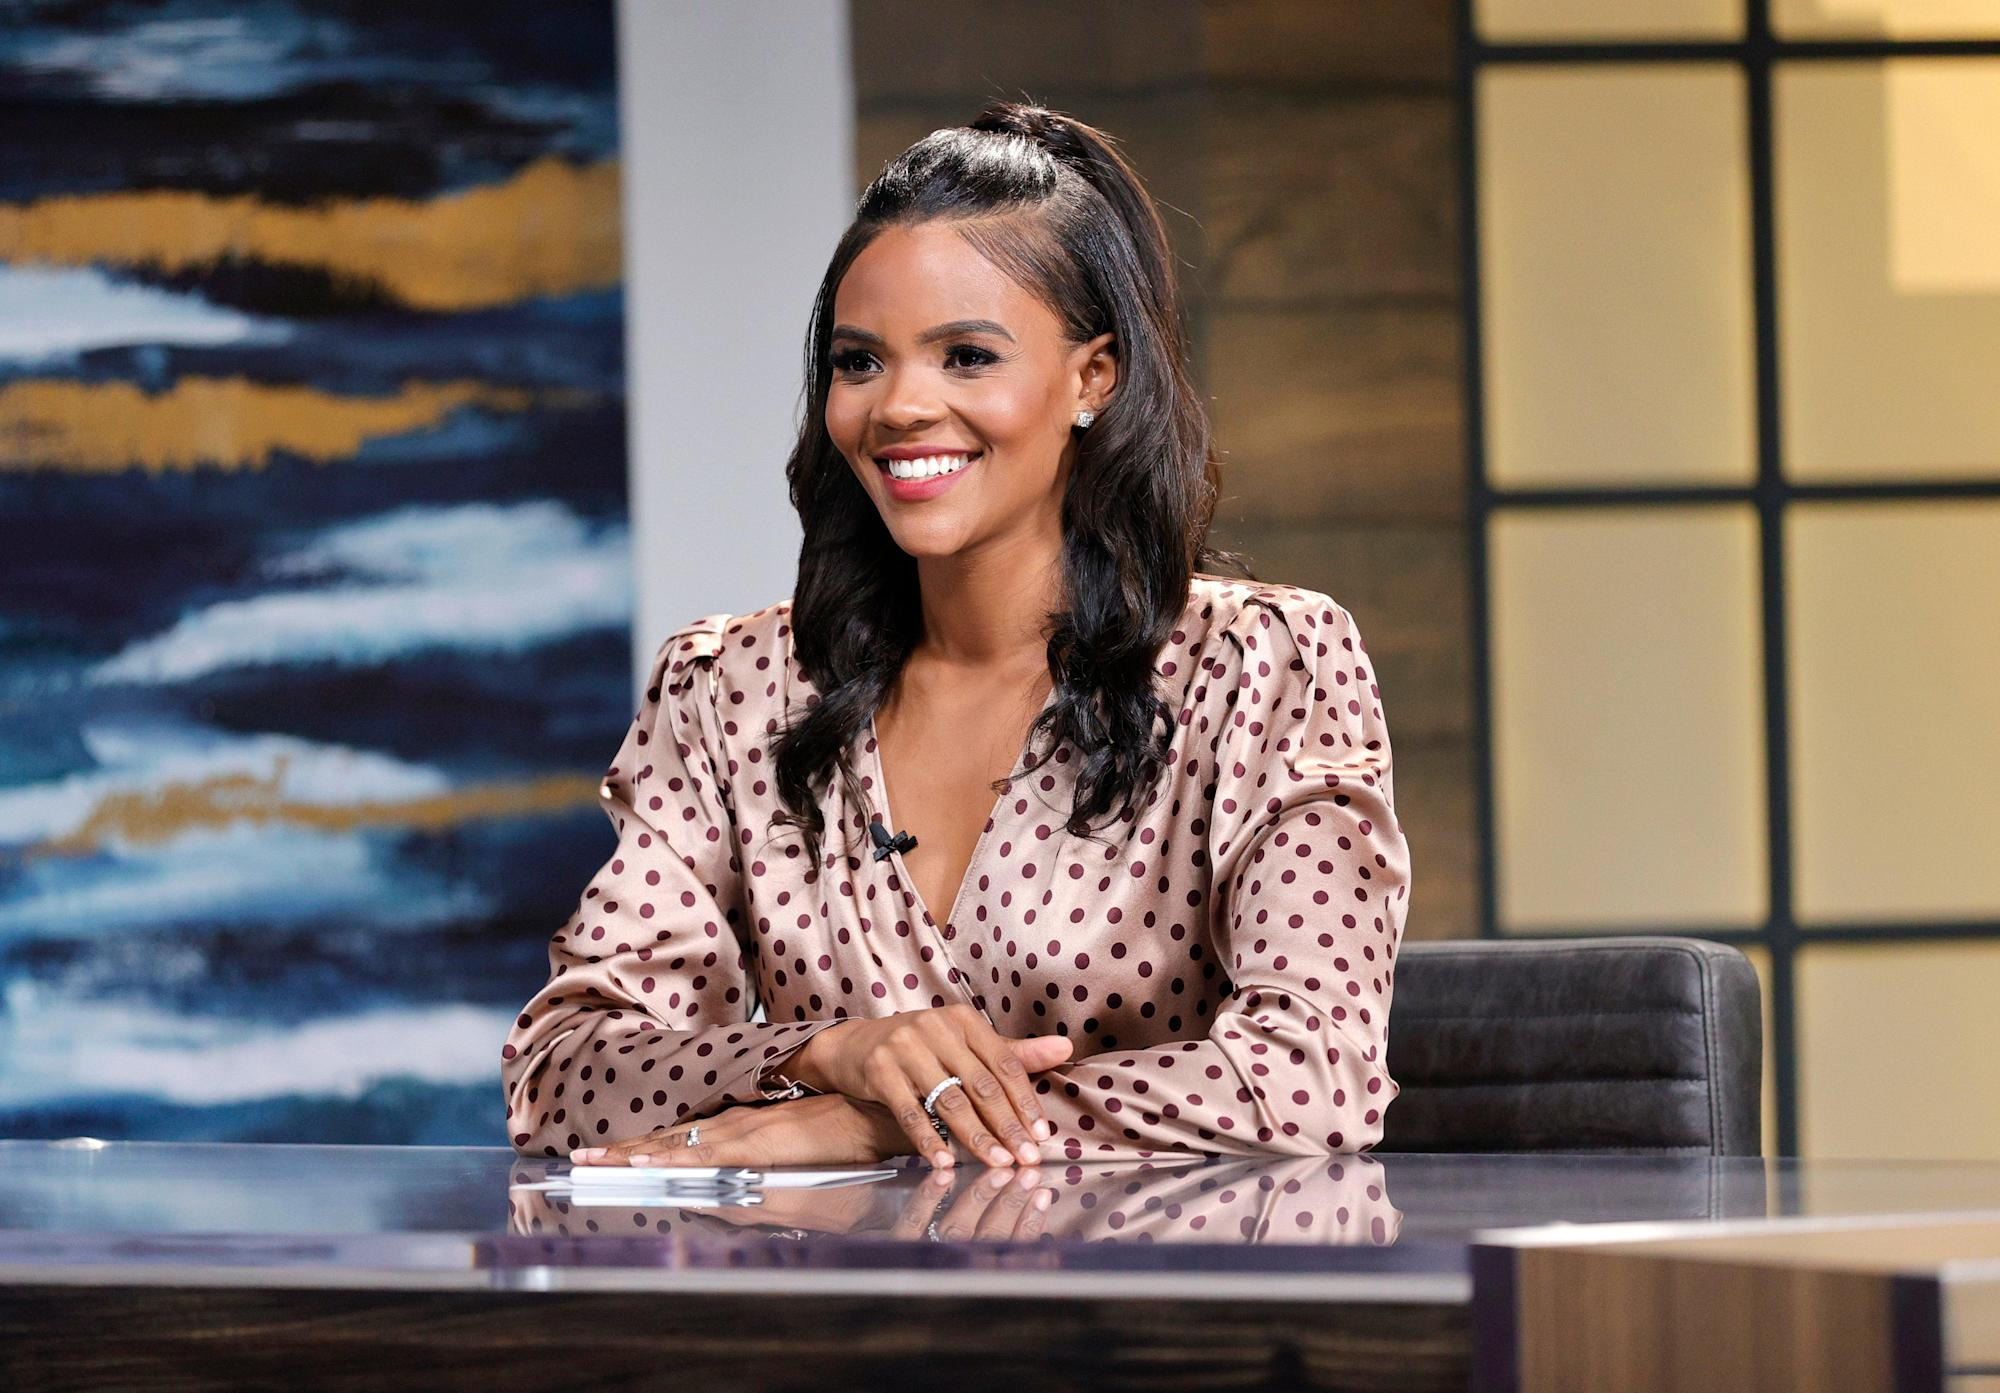 Yes, Candace Owens is a hypocrite for supporting 'medical choice' — but that's not really the point